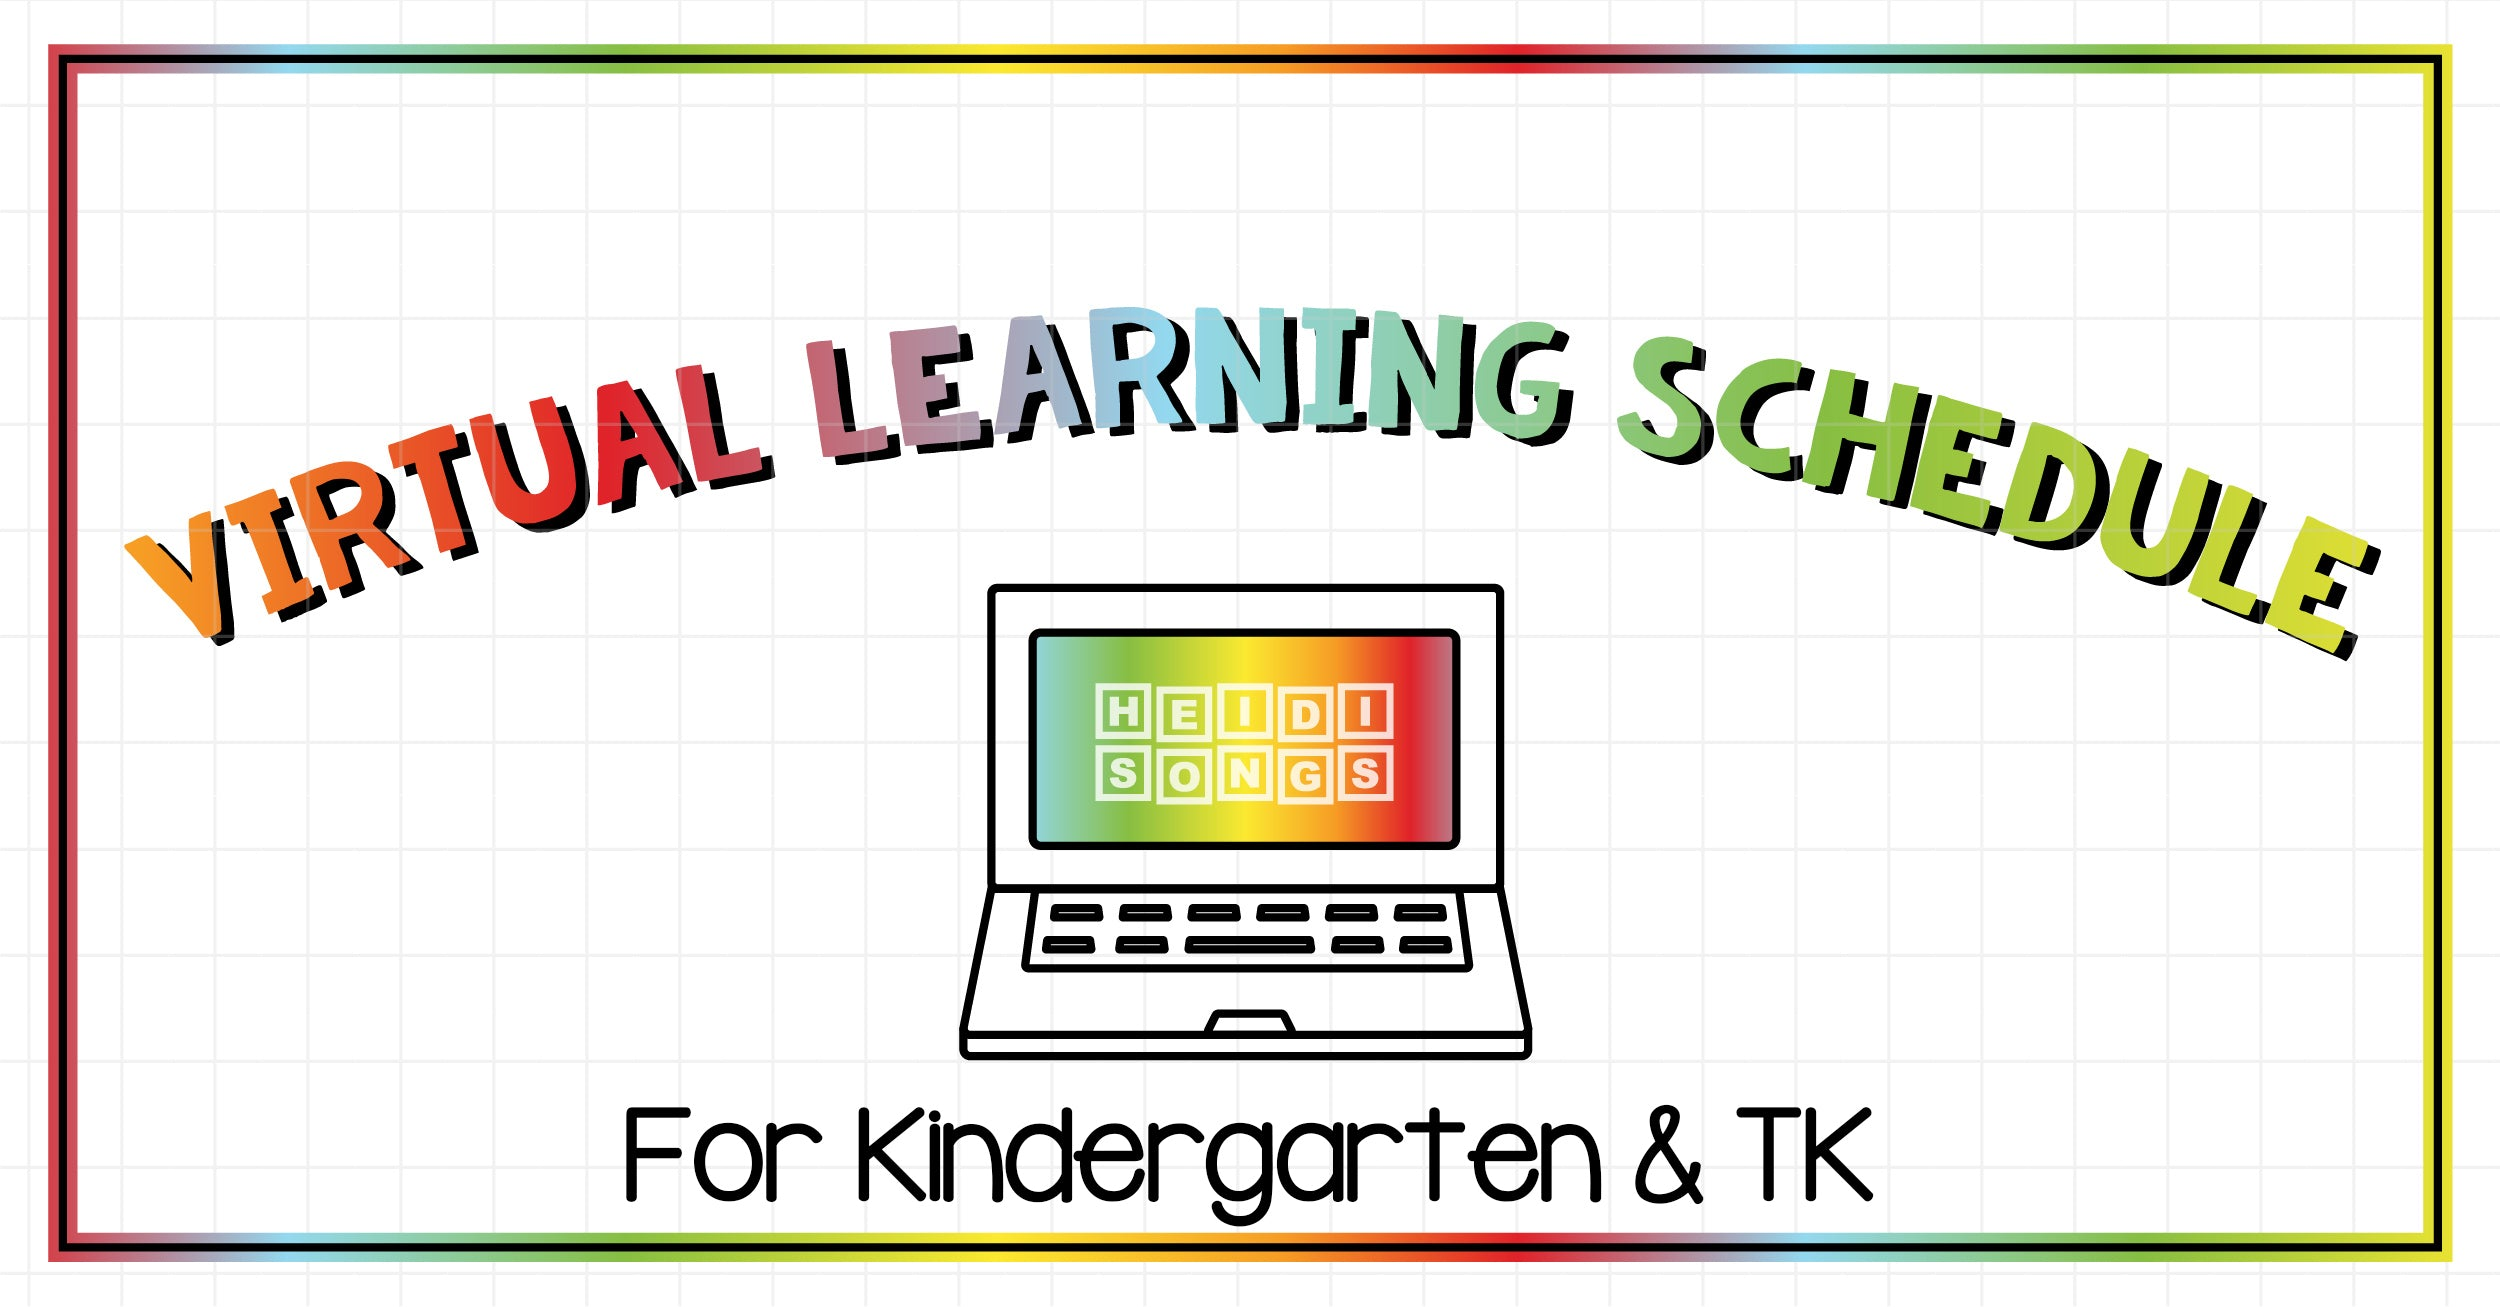 Heidi's Virtual Instruction Daily Schedule for Kindergarten & TK!